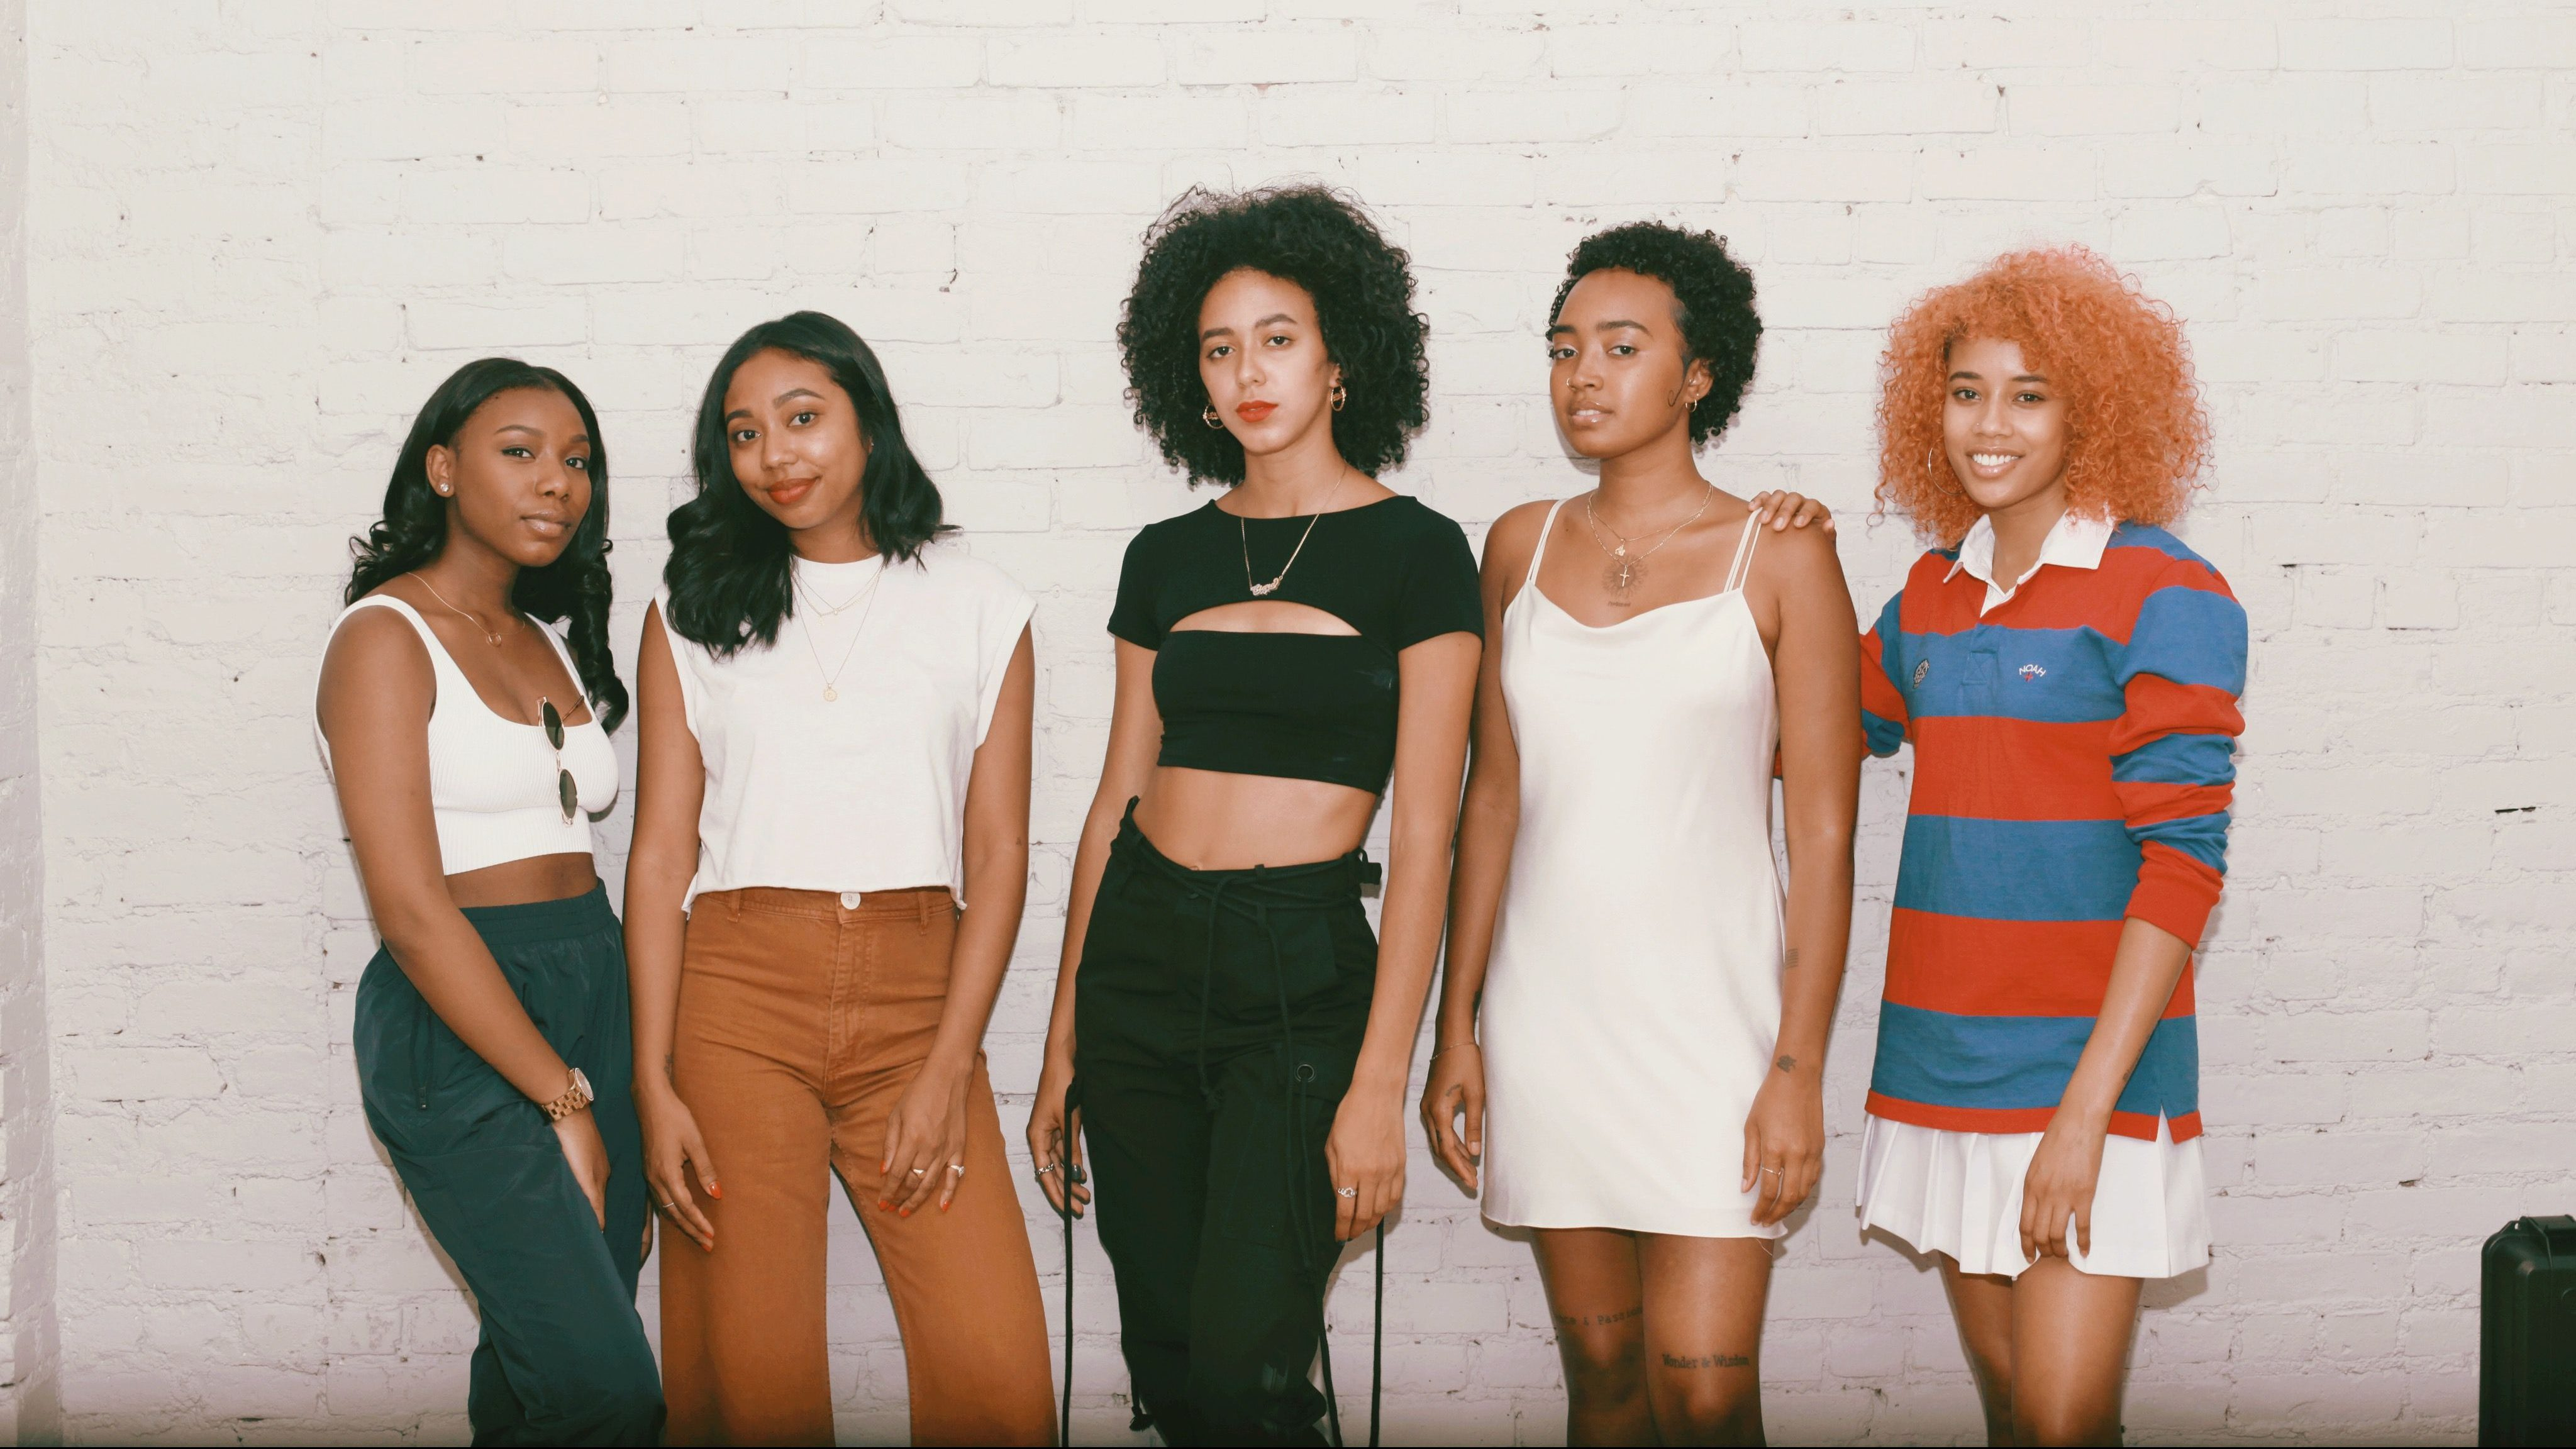 Even with the rise of streetwear, women of color fight to be heard and hired in fashion